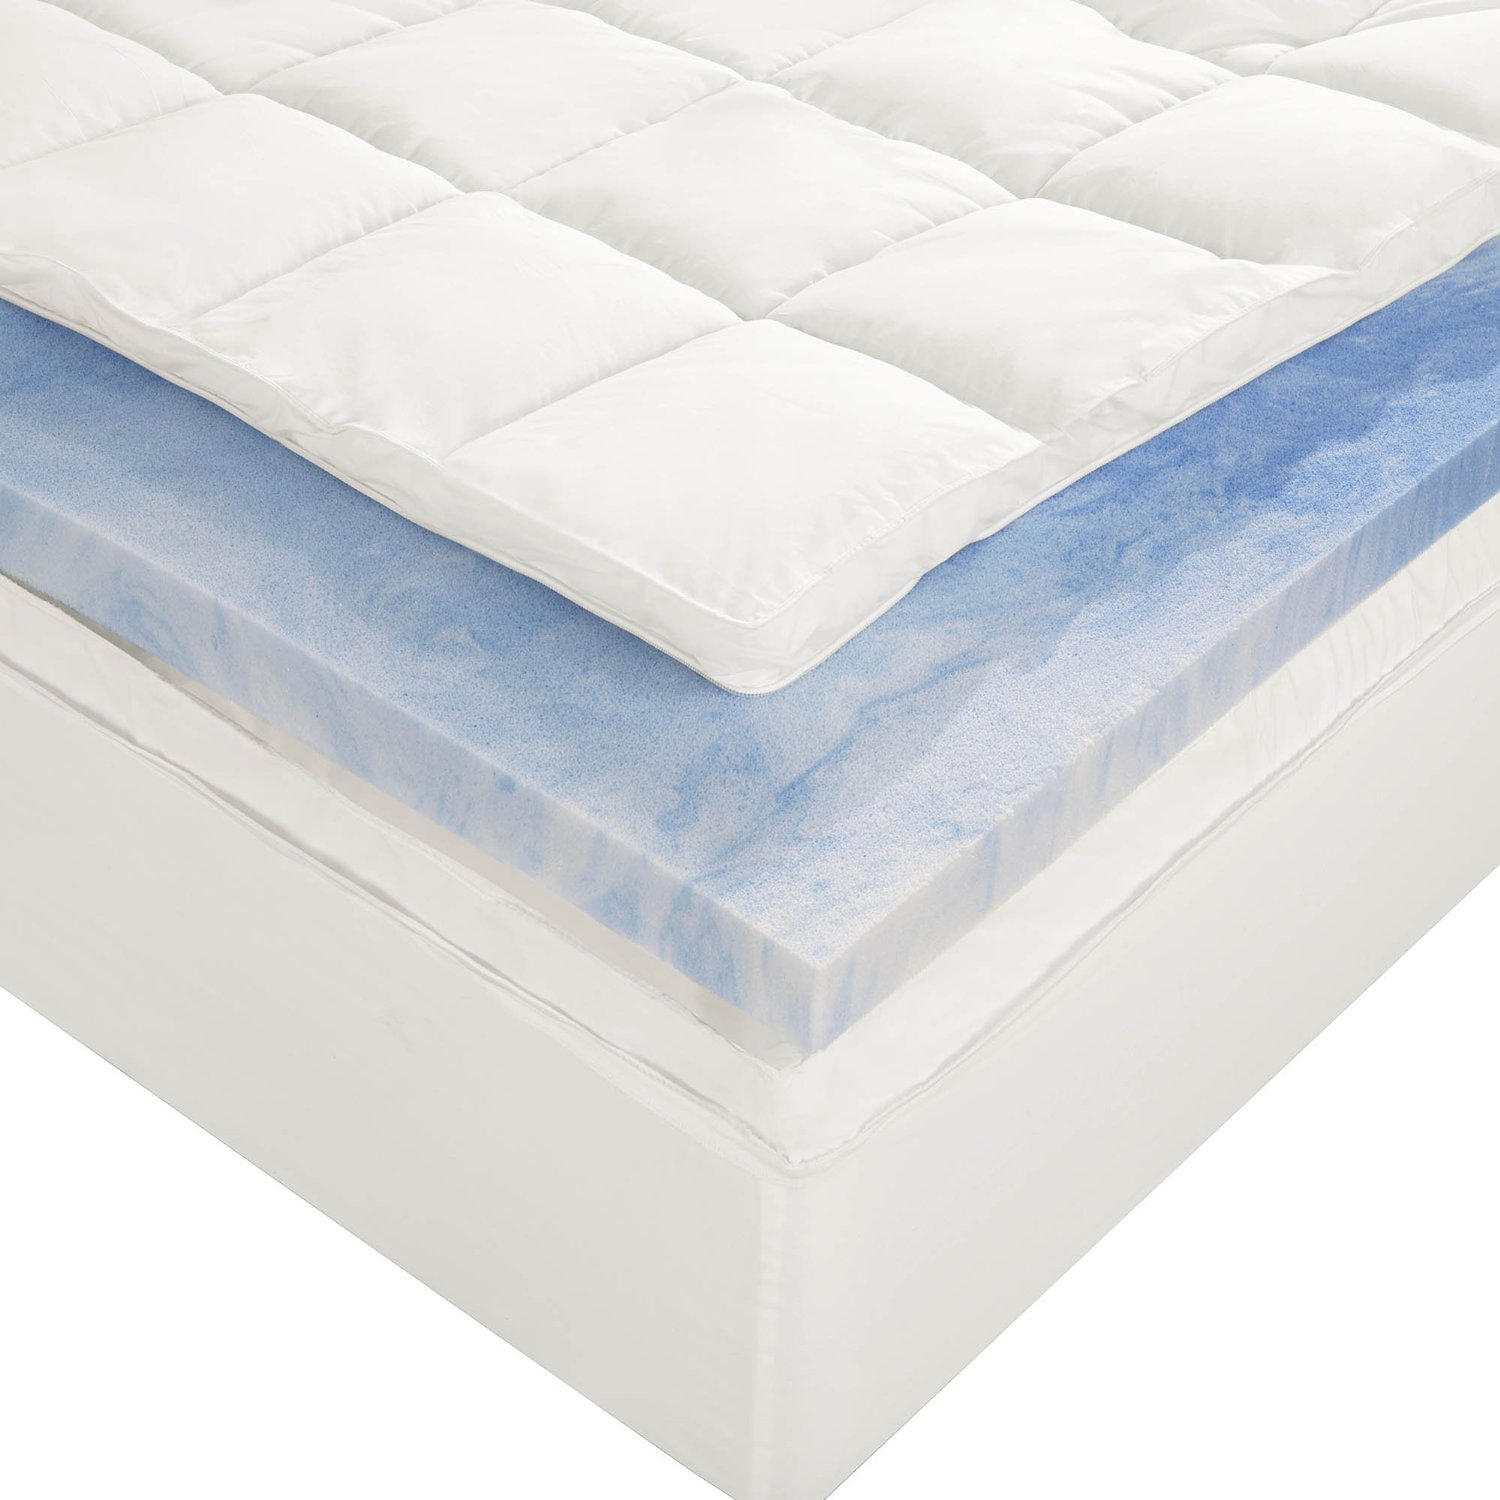 8 Best Memory Foam Mattress Toppers To Boost Your Sleep